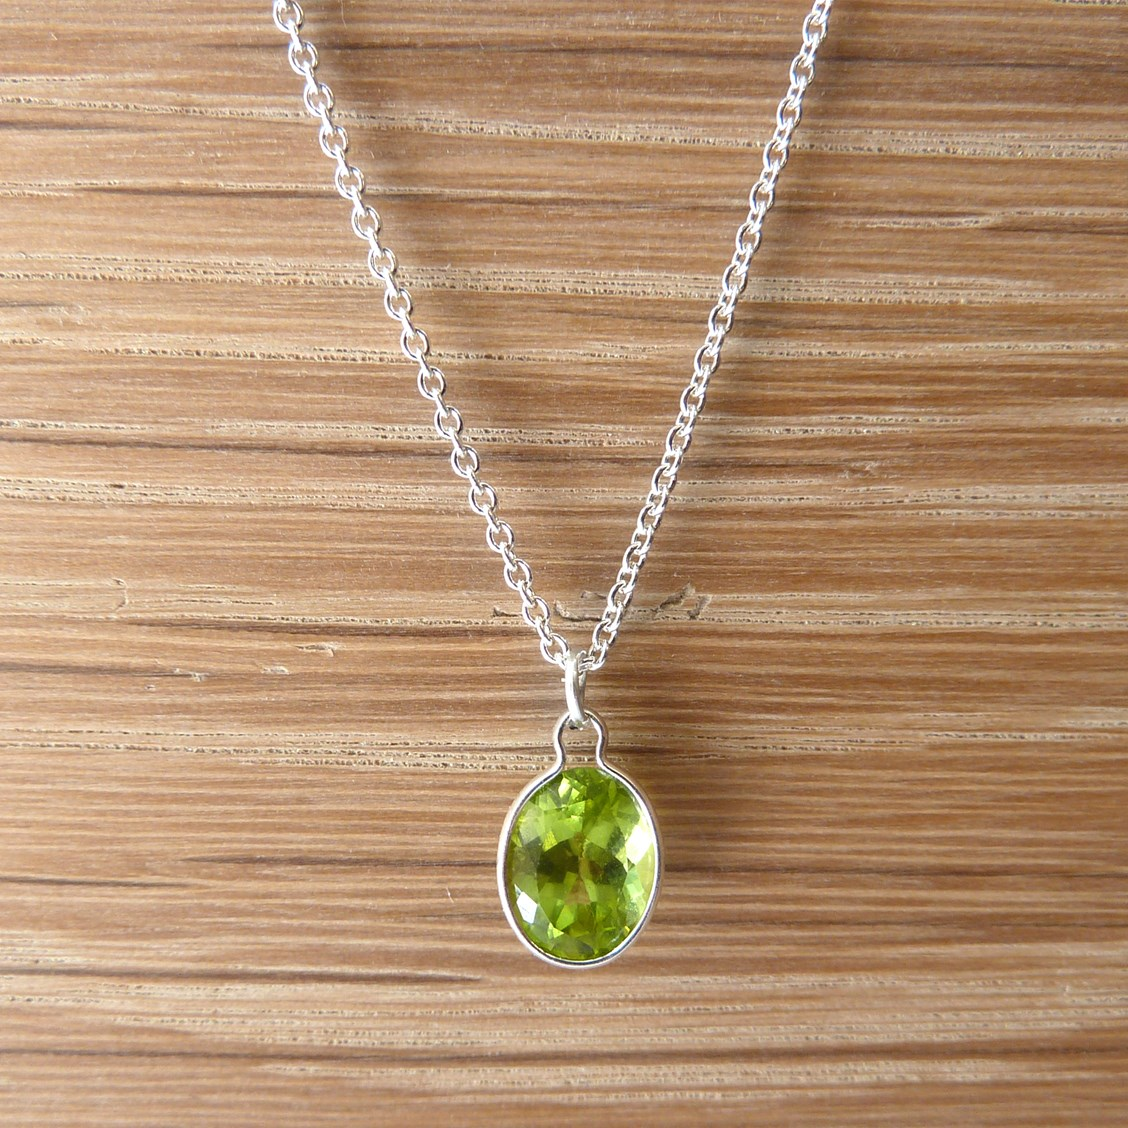 necklace diamond d deb and peridot herkimer guyot ne quartz products